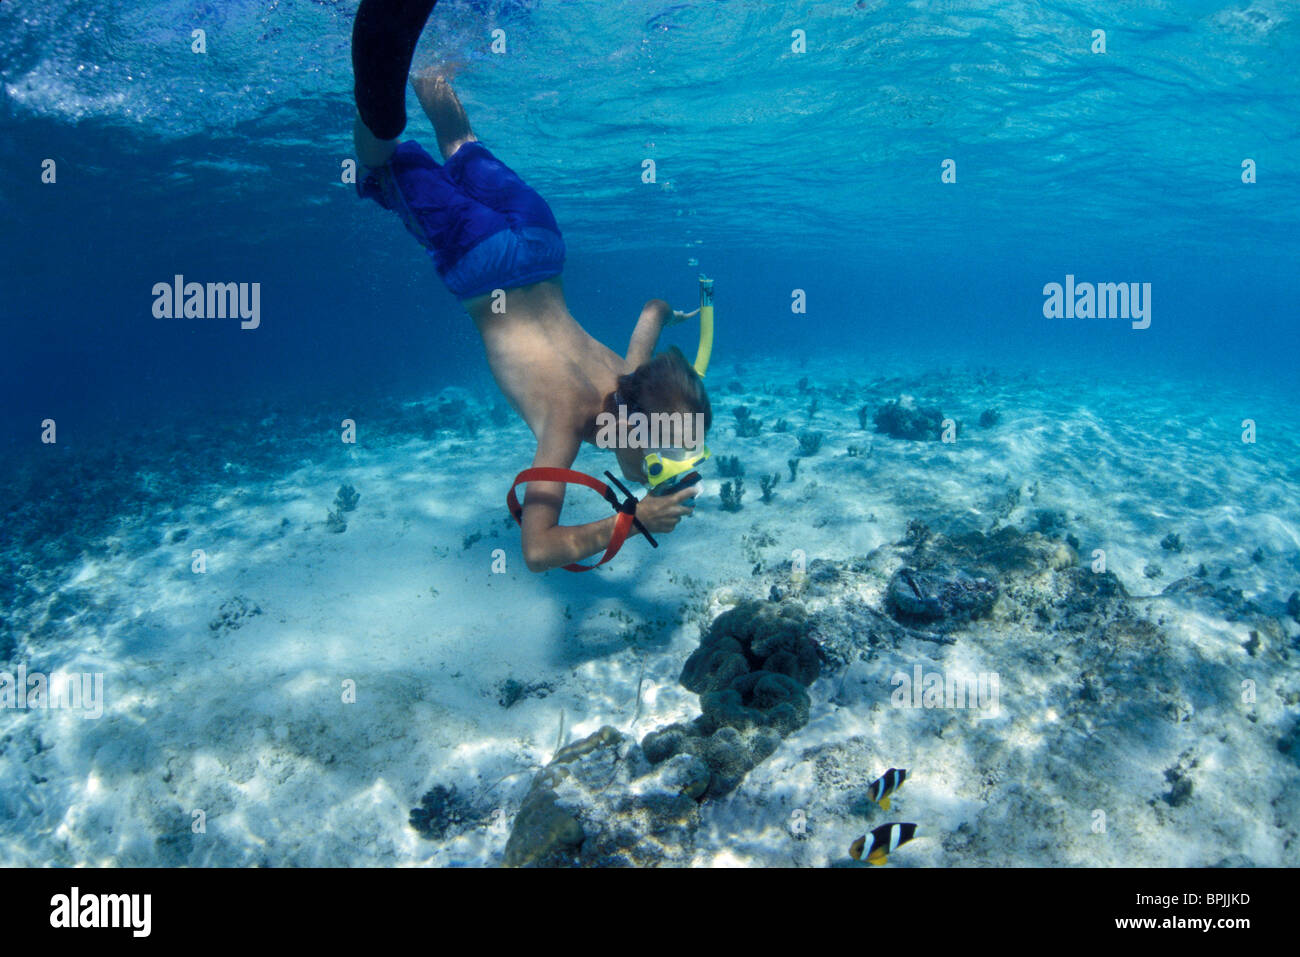 Boy Age 10 Snorkeling With Underwater Camera